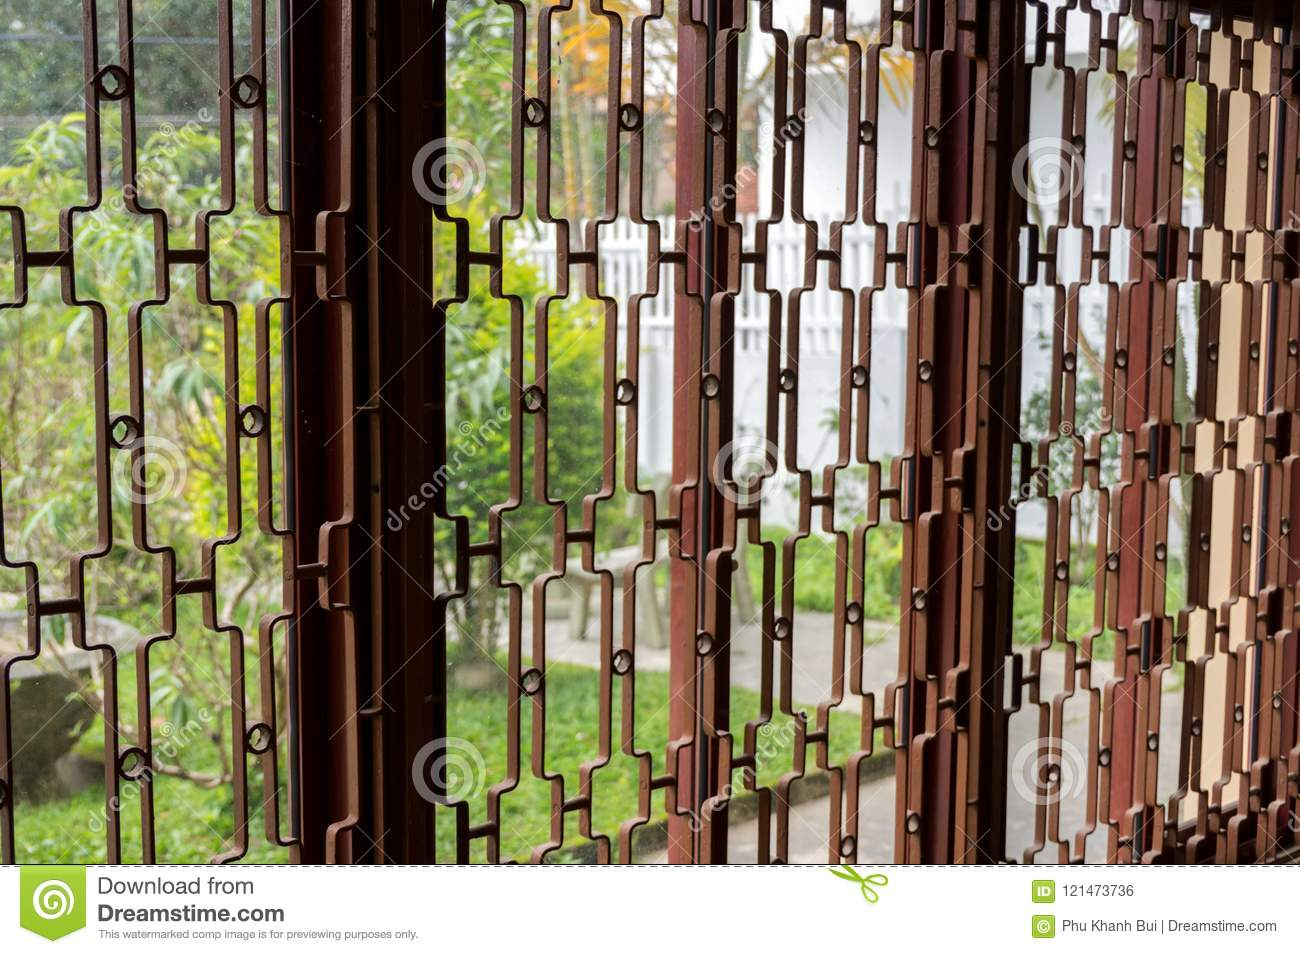 The Texture Of Iron Used To Make Door Frames Stock Photo - Image of ...